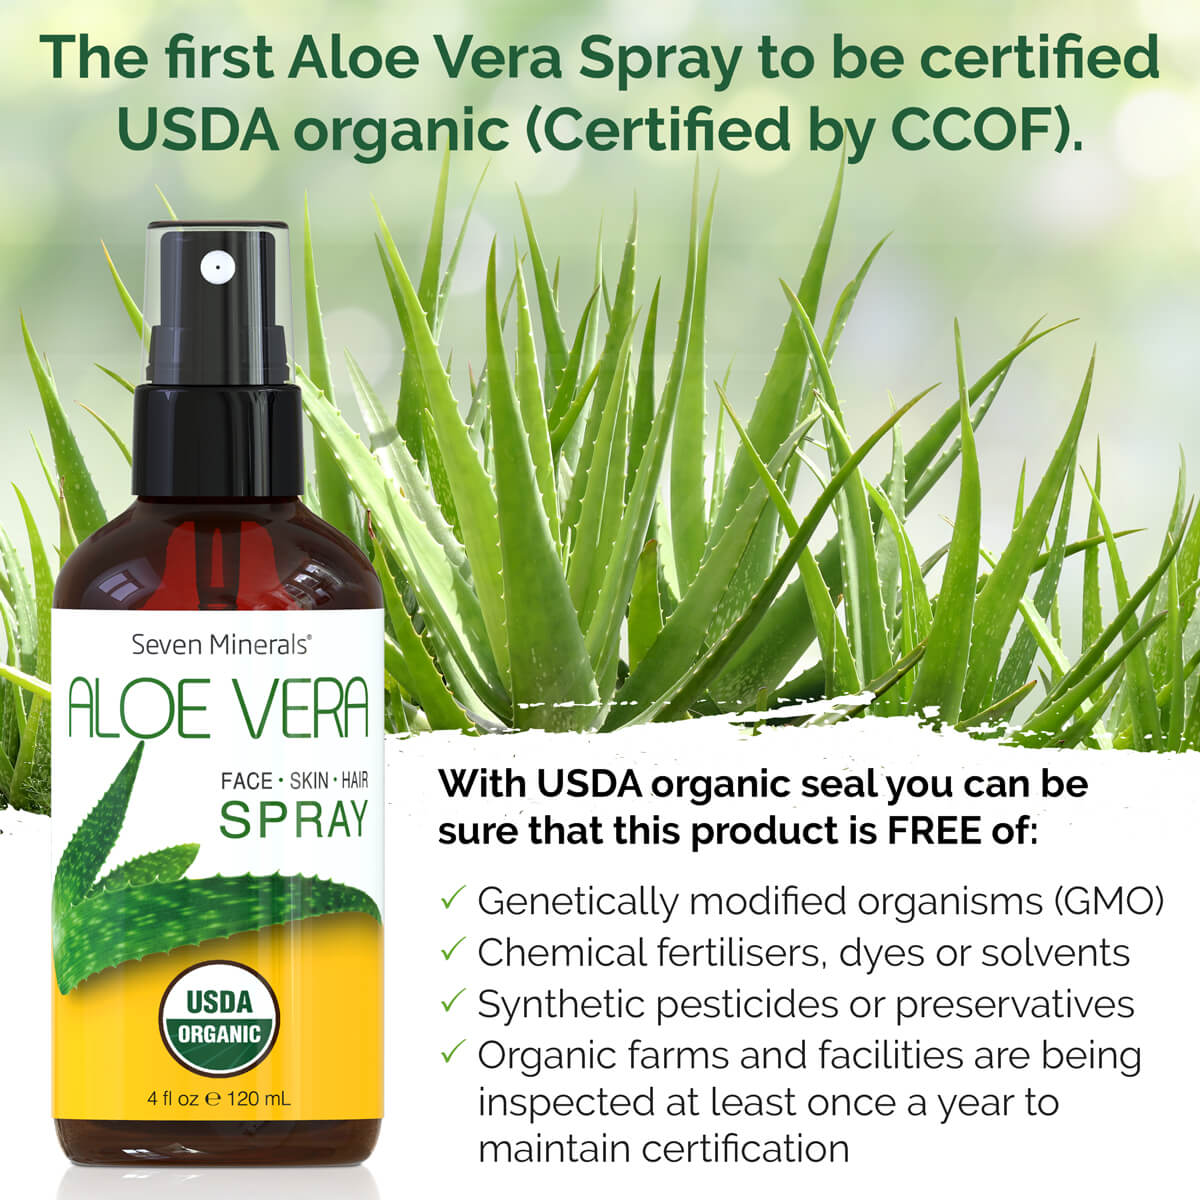 #1 USDA Organic Aloe Vera Spray by Seven Minerals 4oz (Shipping Within USA only)